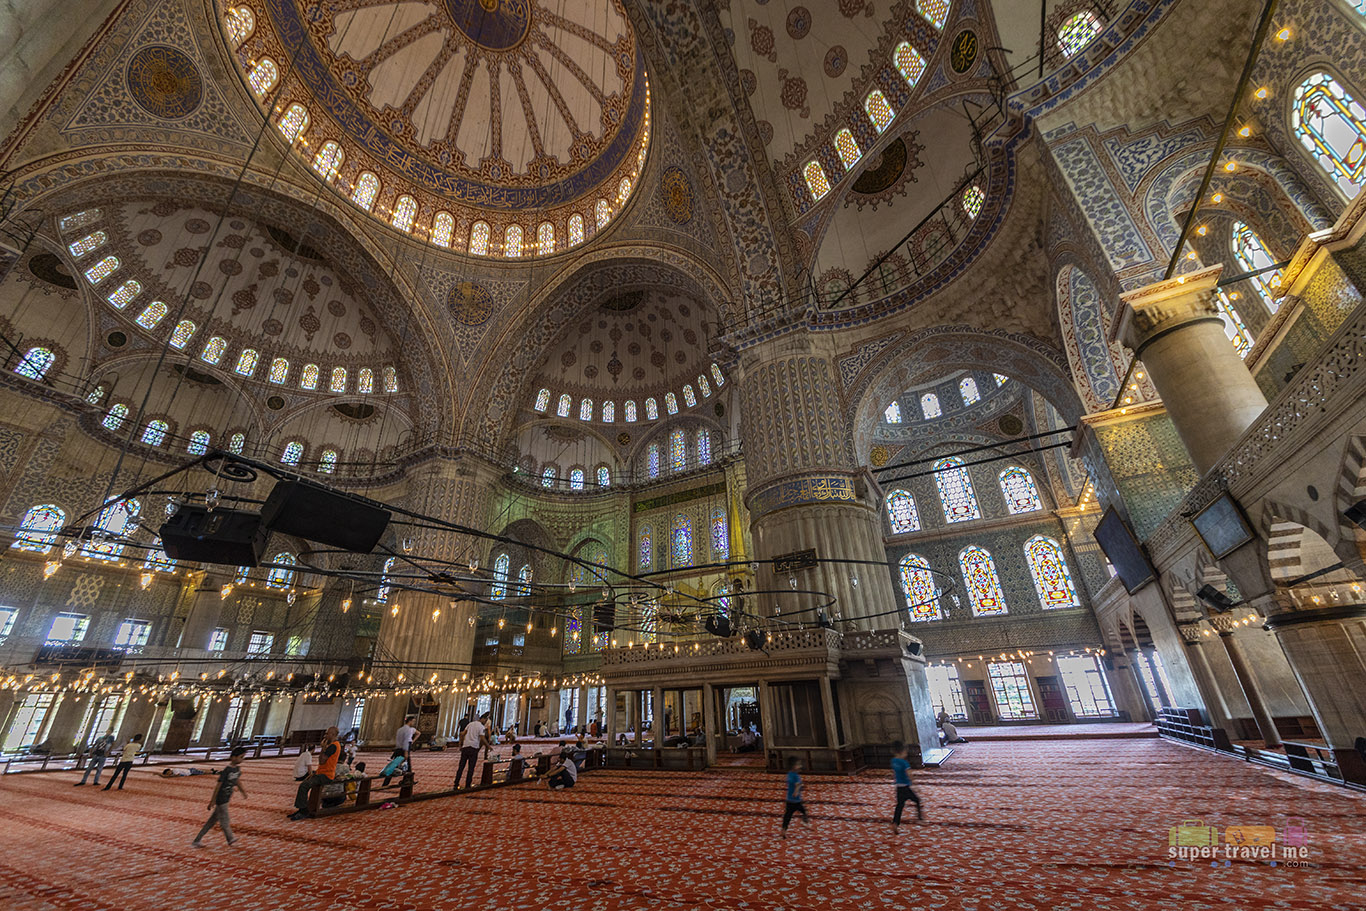 Inside the Sultan Ahmet Mosque (Blue Mosque in Istanbul)